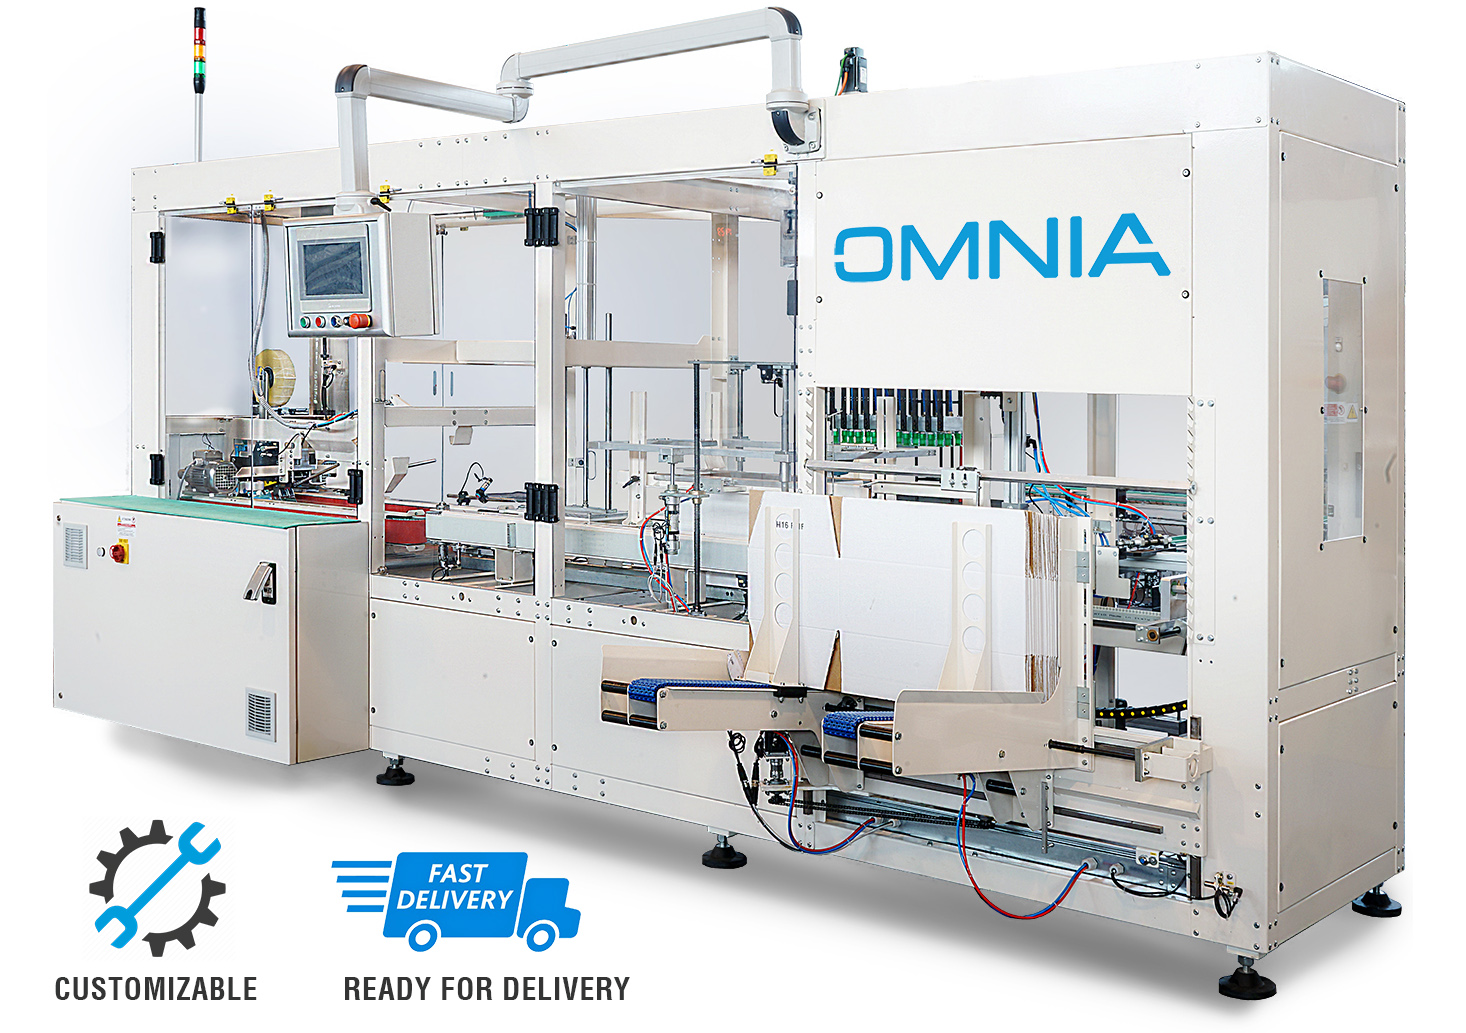 OMNIA 3 in one - READY FOR DELIVERY